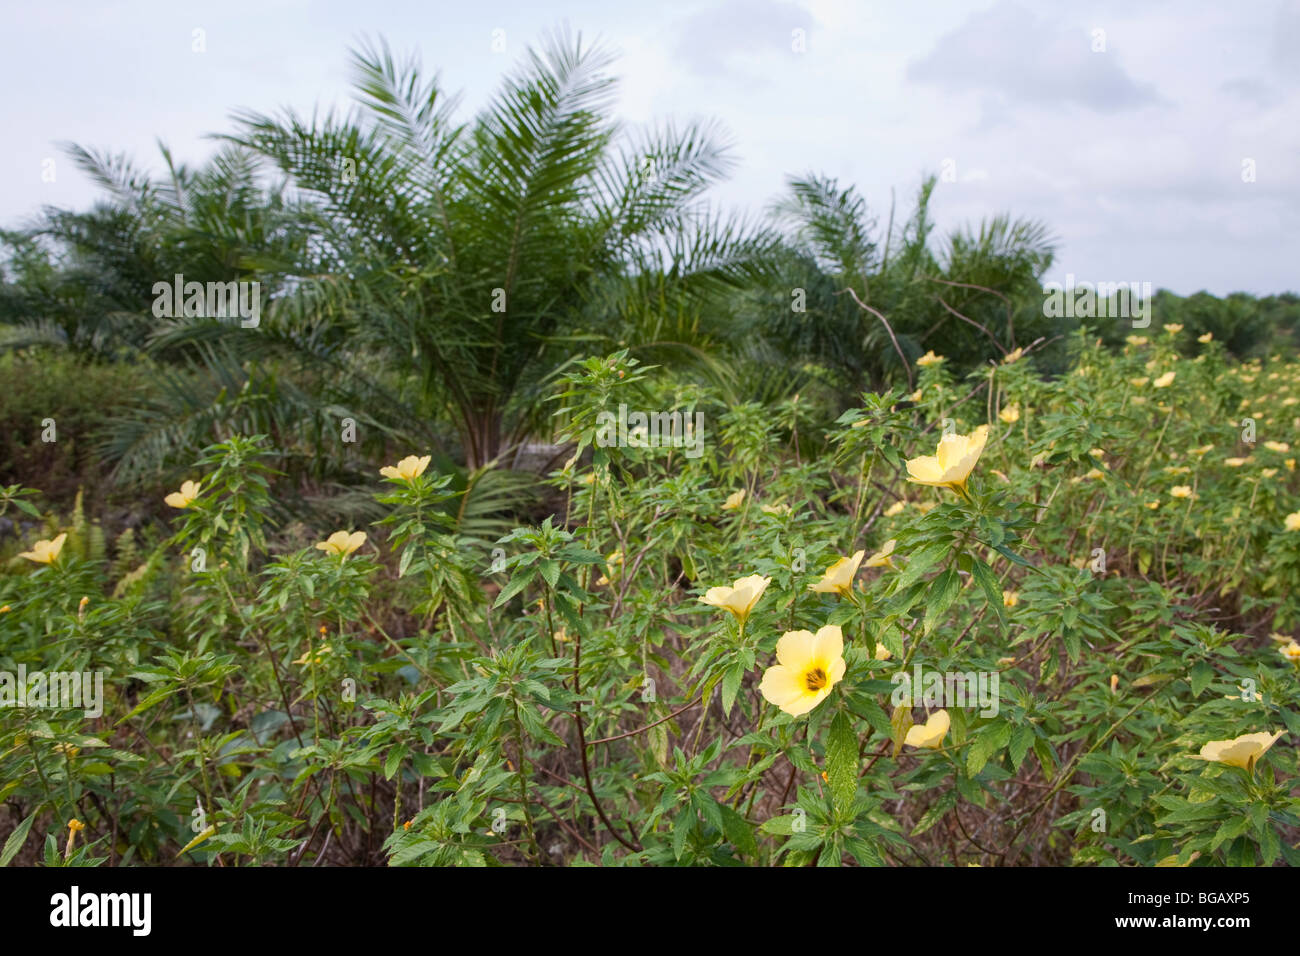 Flowering plants were planted along the roadway to attract pollinator species. The Sindora Palm Oil Plantation, Stock Photo